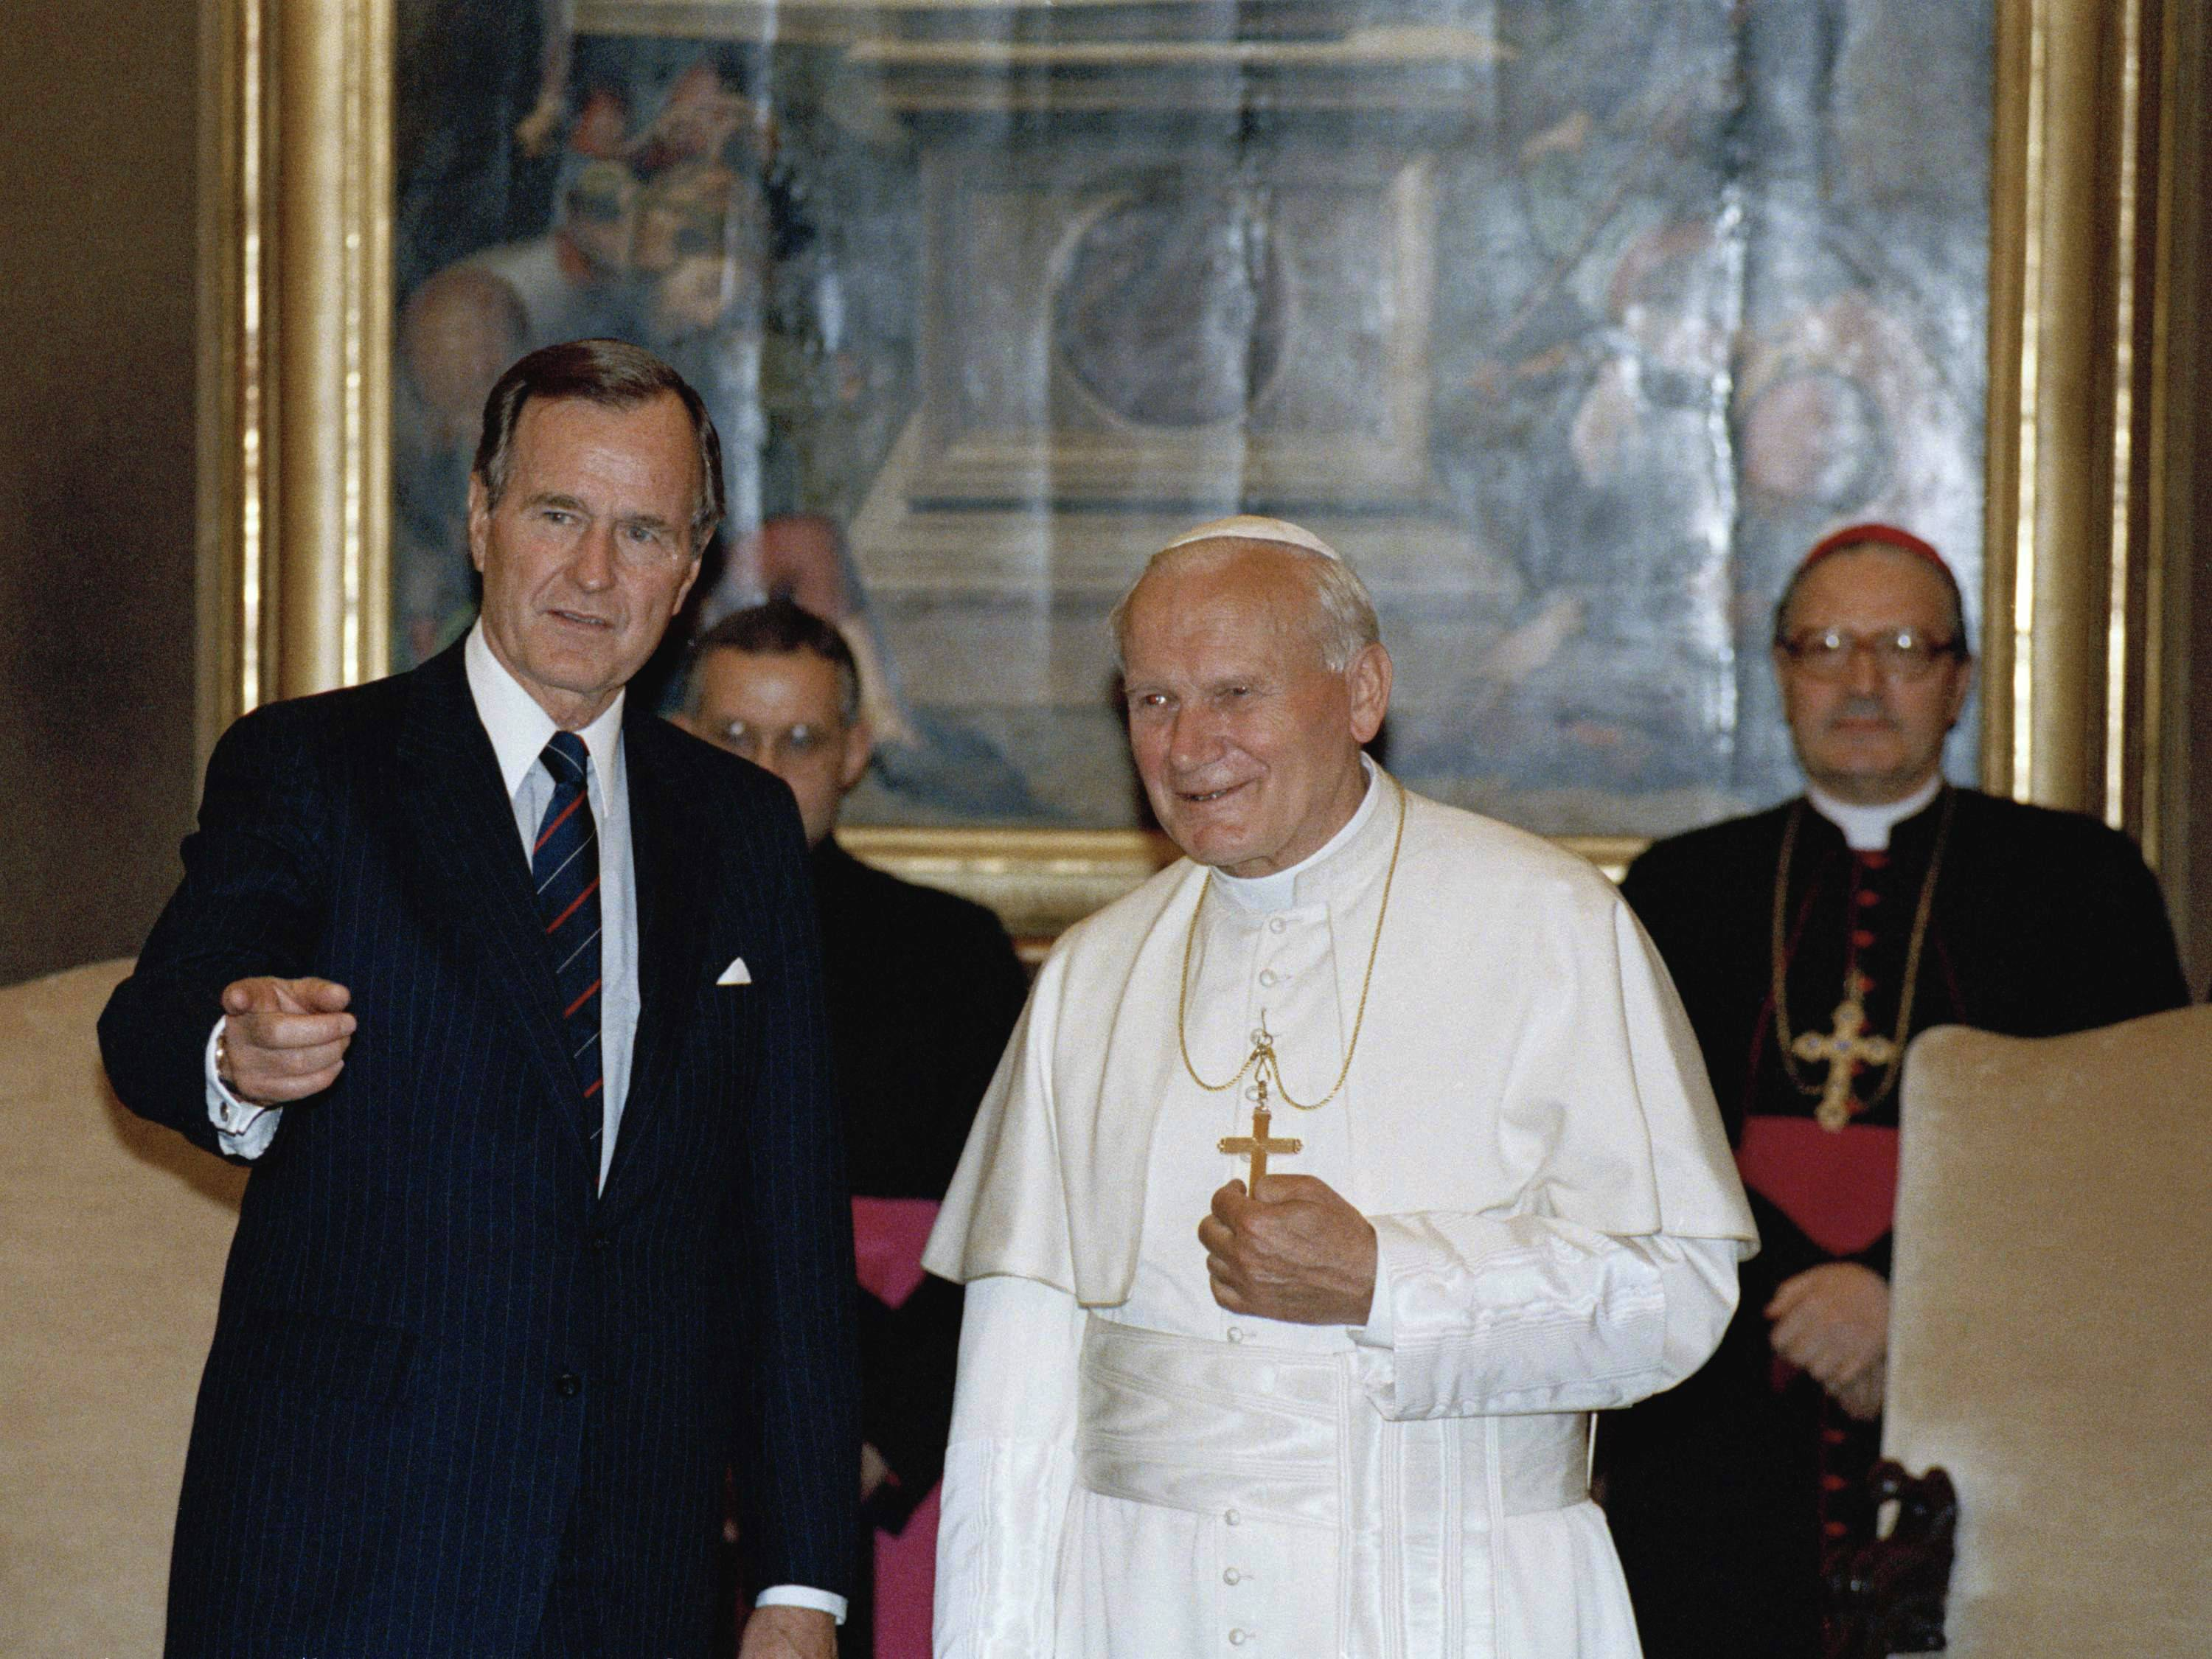 President George H.W. Bush gestures while standing with Pope John Paul II in the papal library at the Vatican.